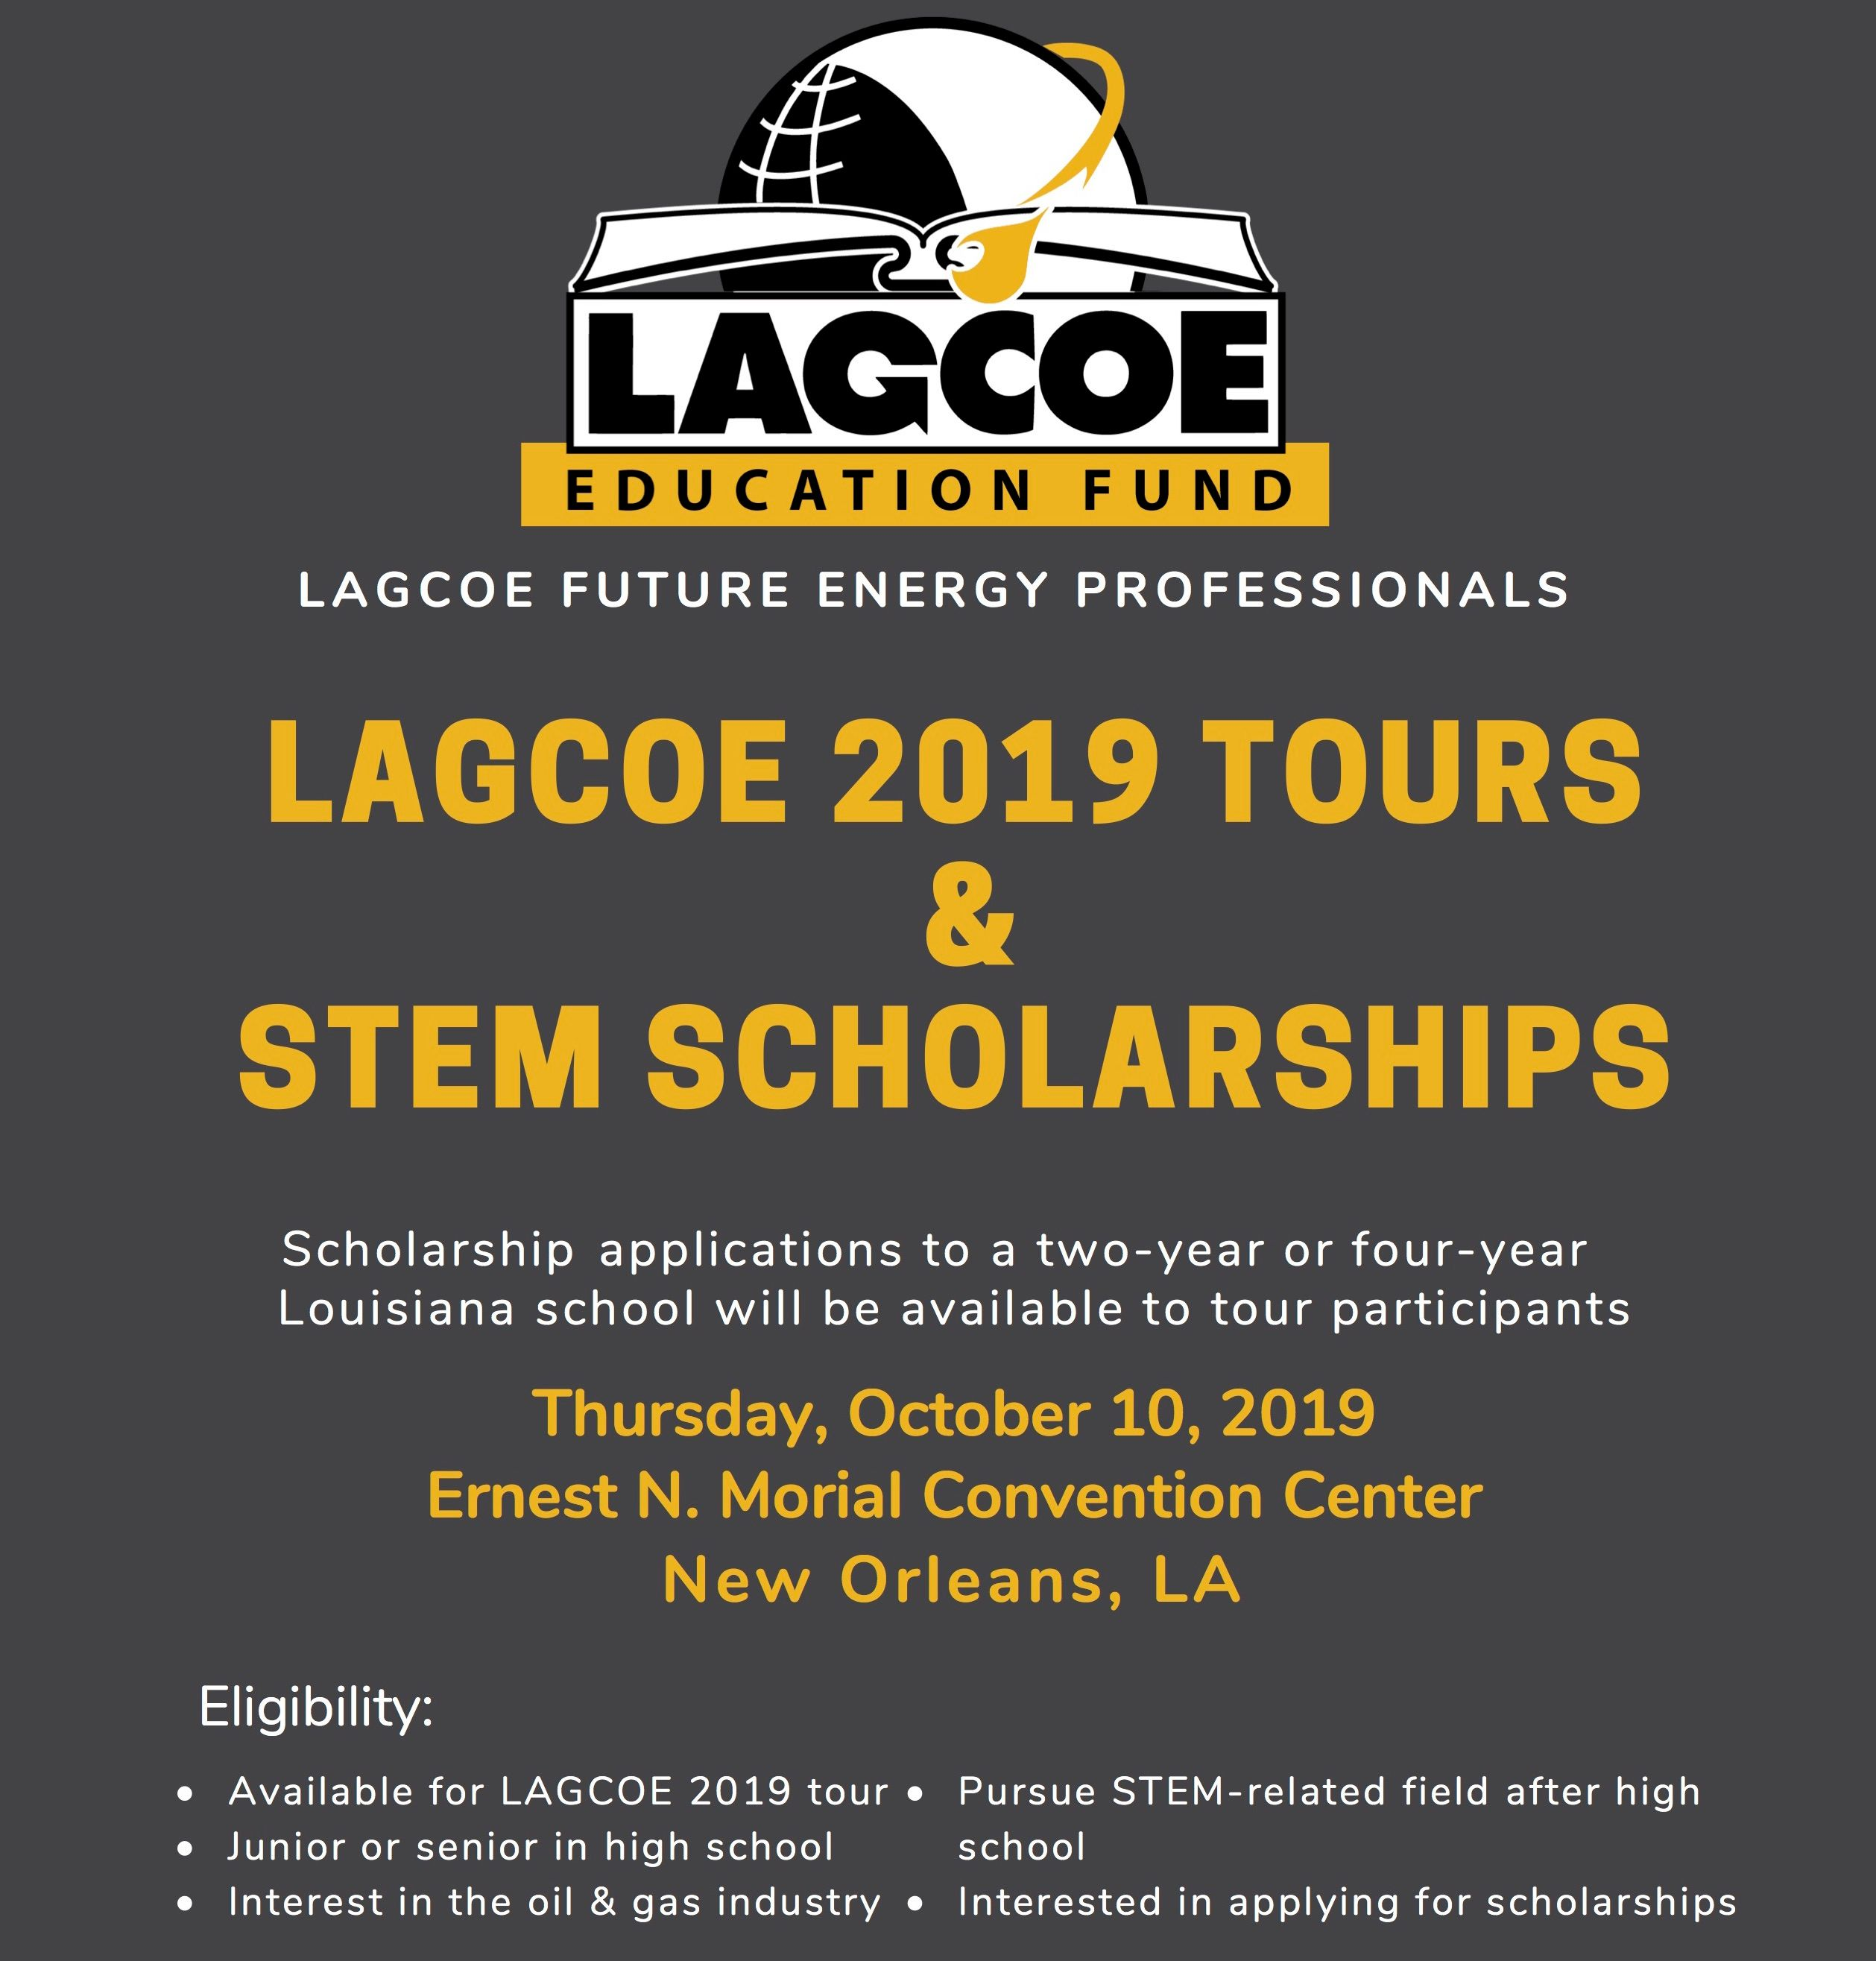 Scholarship Opportunity for High School high school juniors and seniors interested in a STEM future in Energy